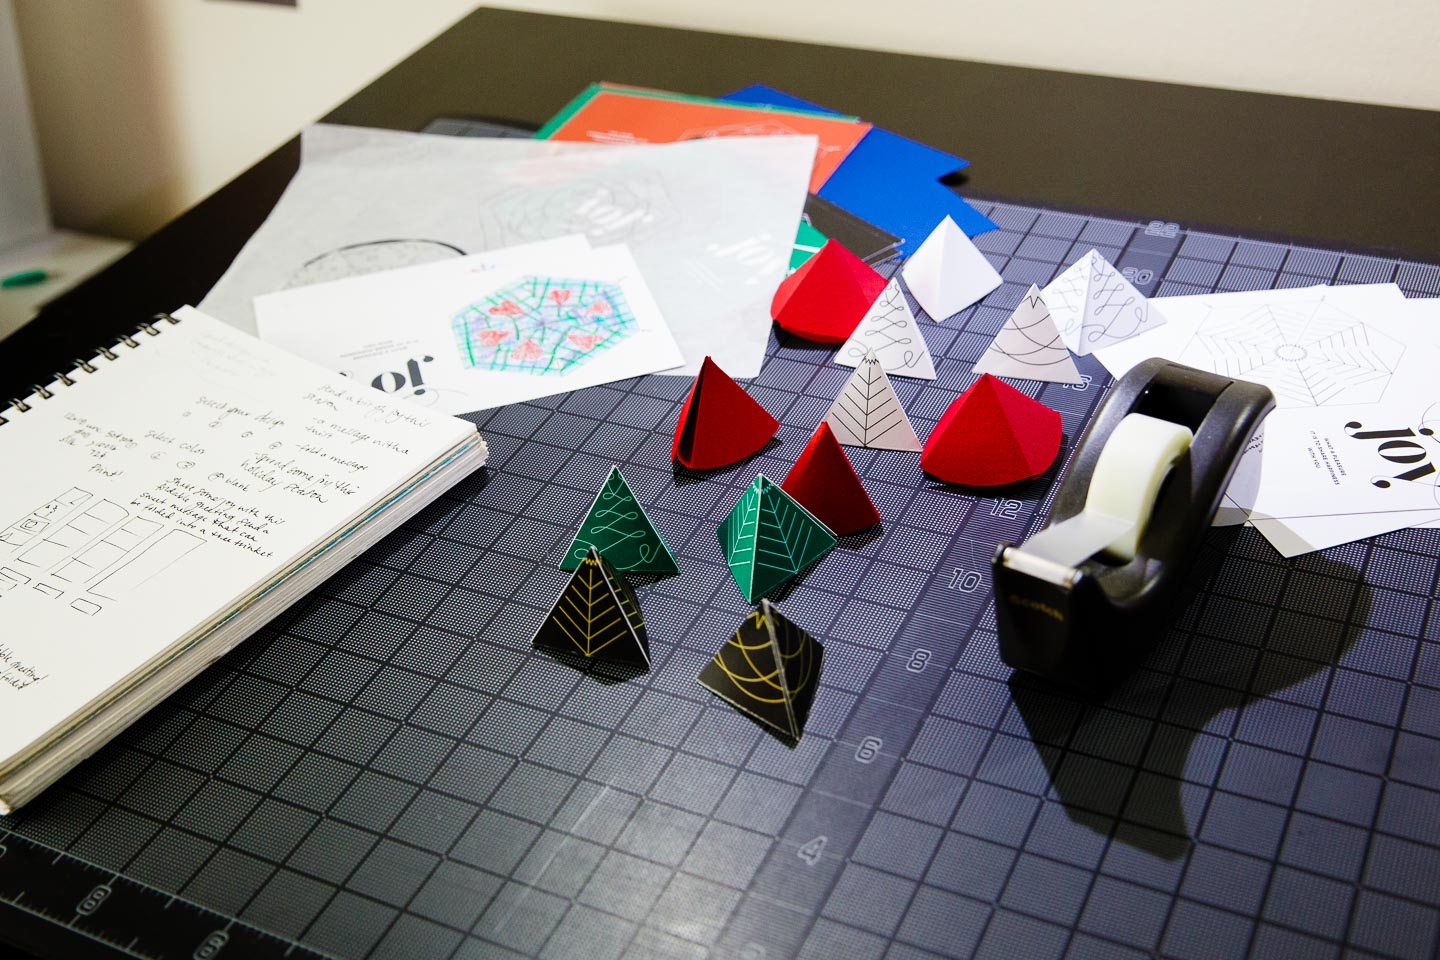 Small triangular paper prototypes in red, green, and black atop a black gridded cutting mat